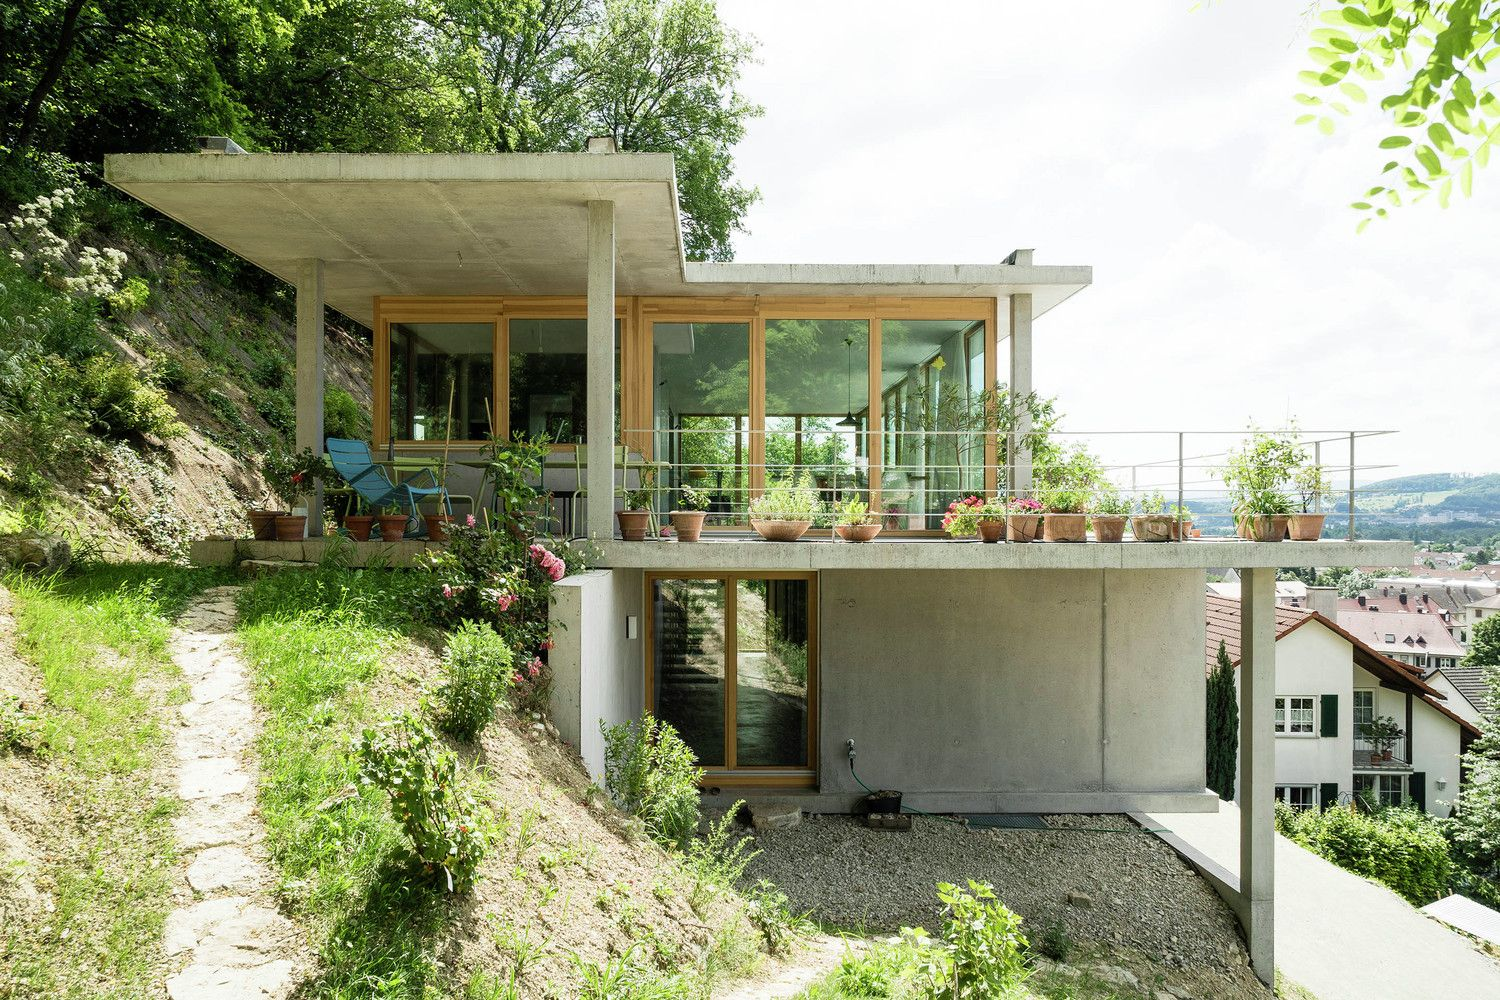 Gallery Of House On A Slope Gian Salis Architect 1 Houses On